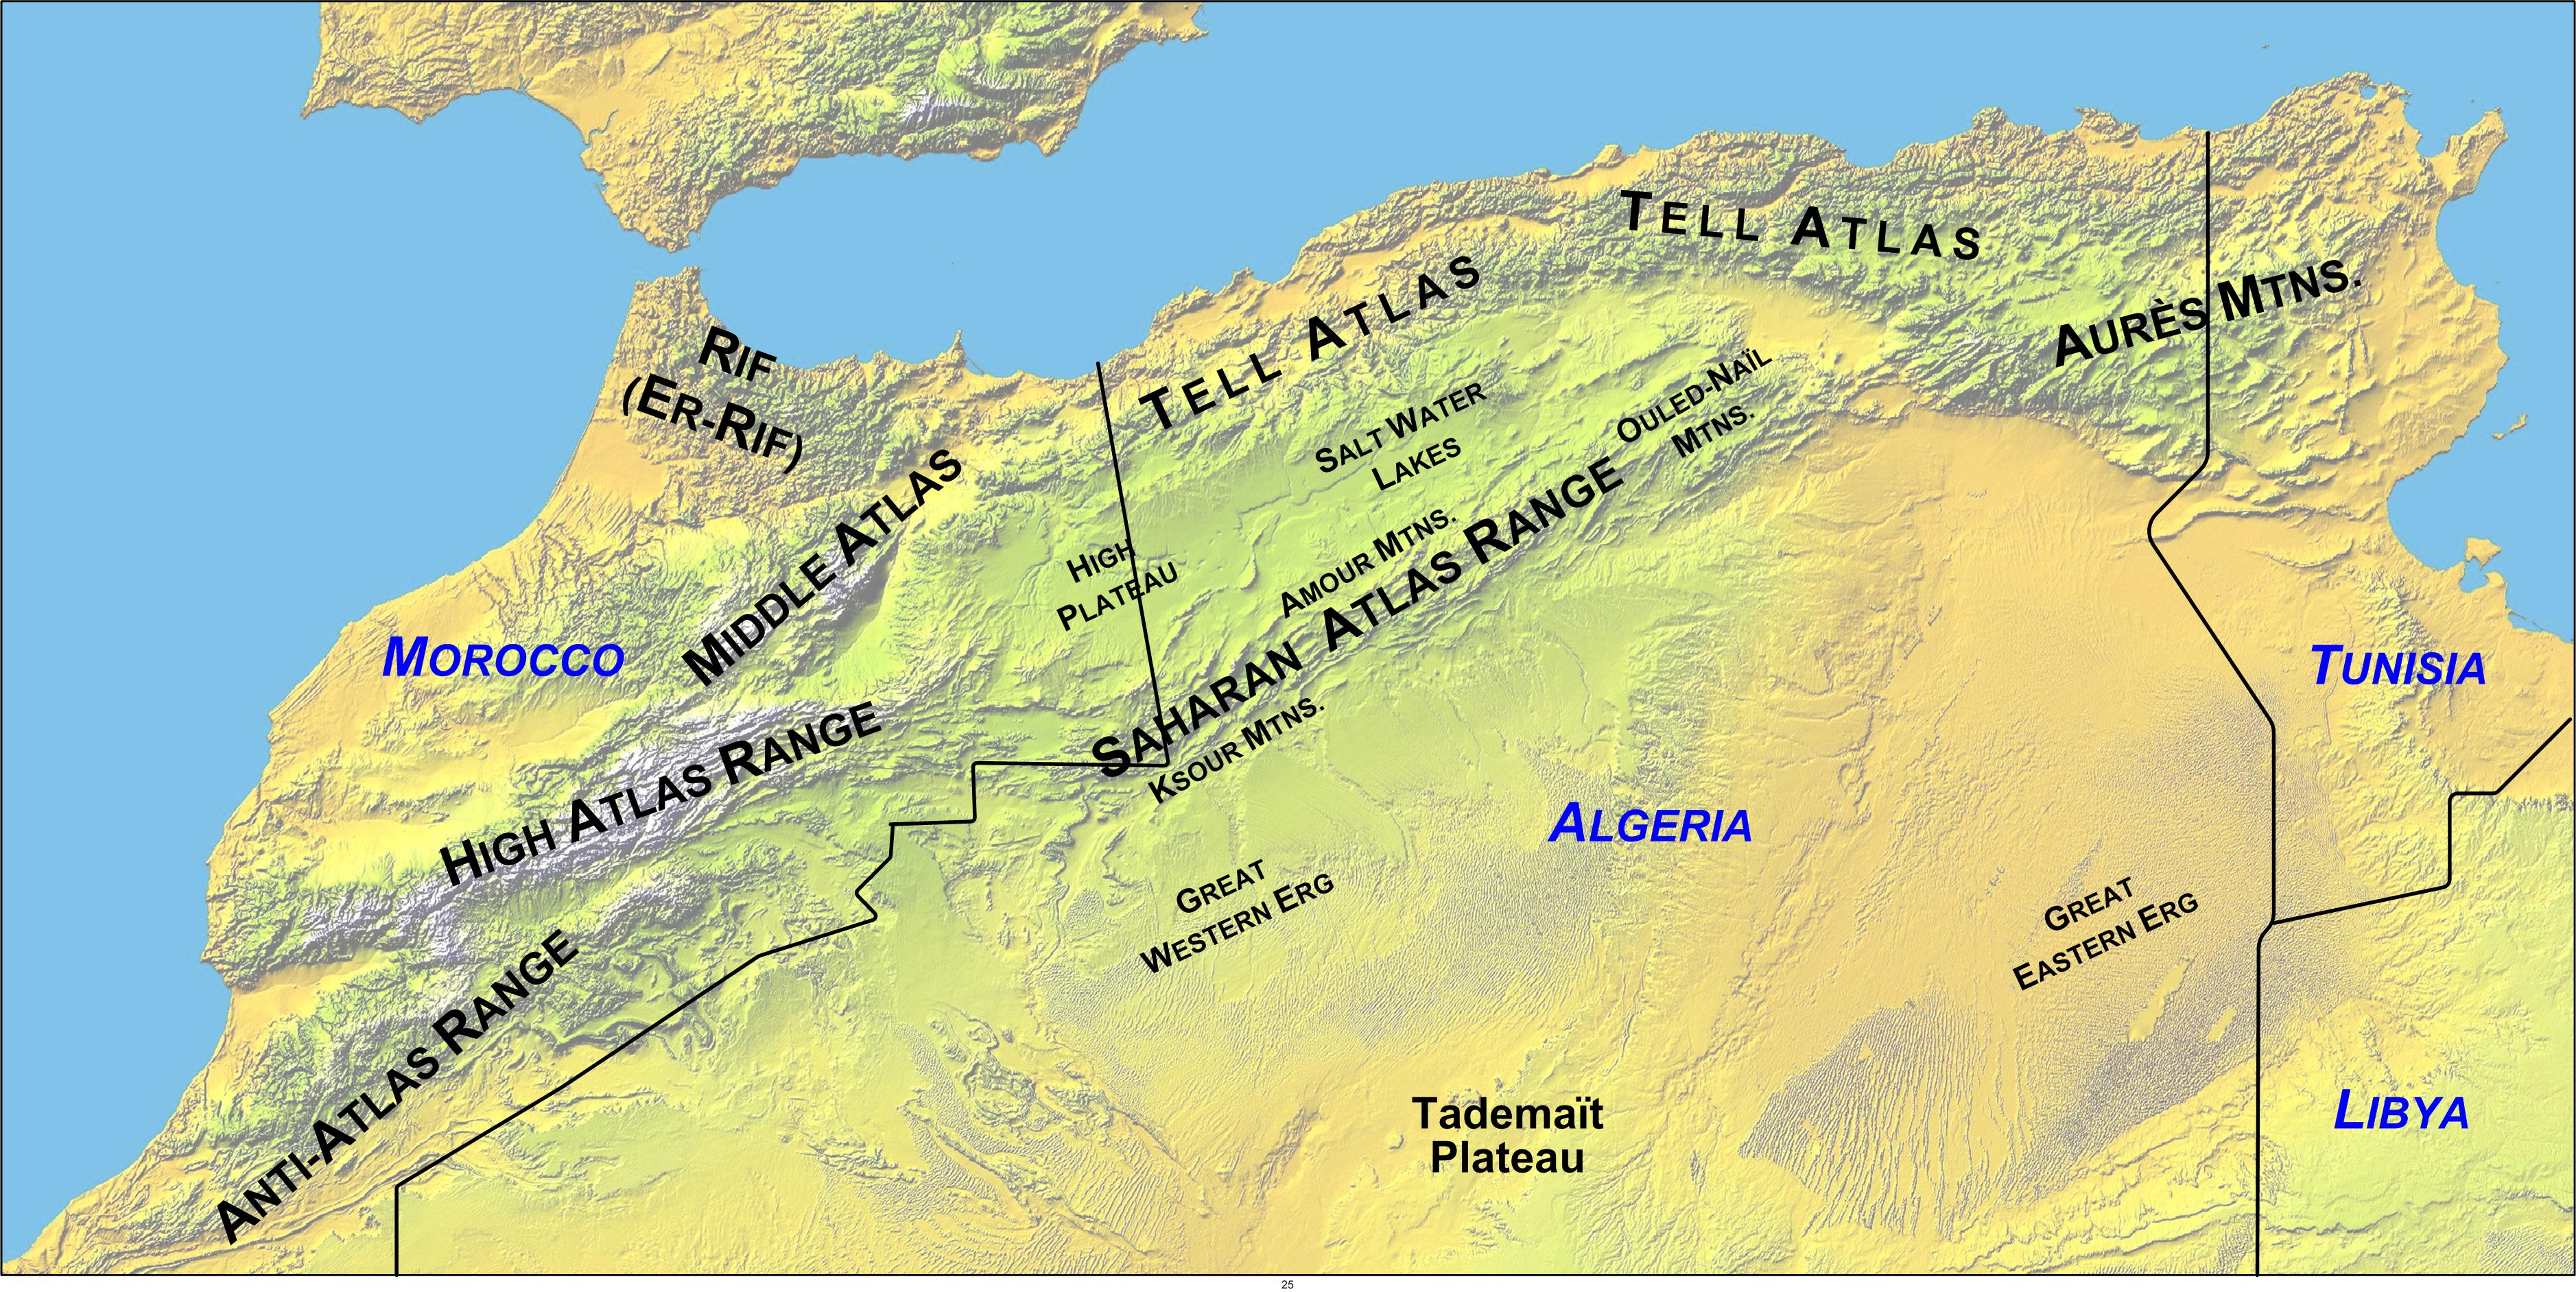 Fileatlas mountains labeled 2g wikimedia commons fileatlas mountains labeled 2g gumiabroncs